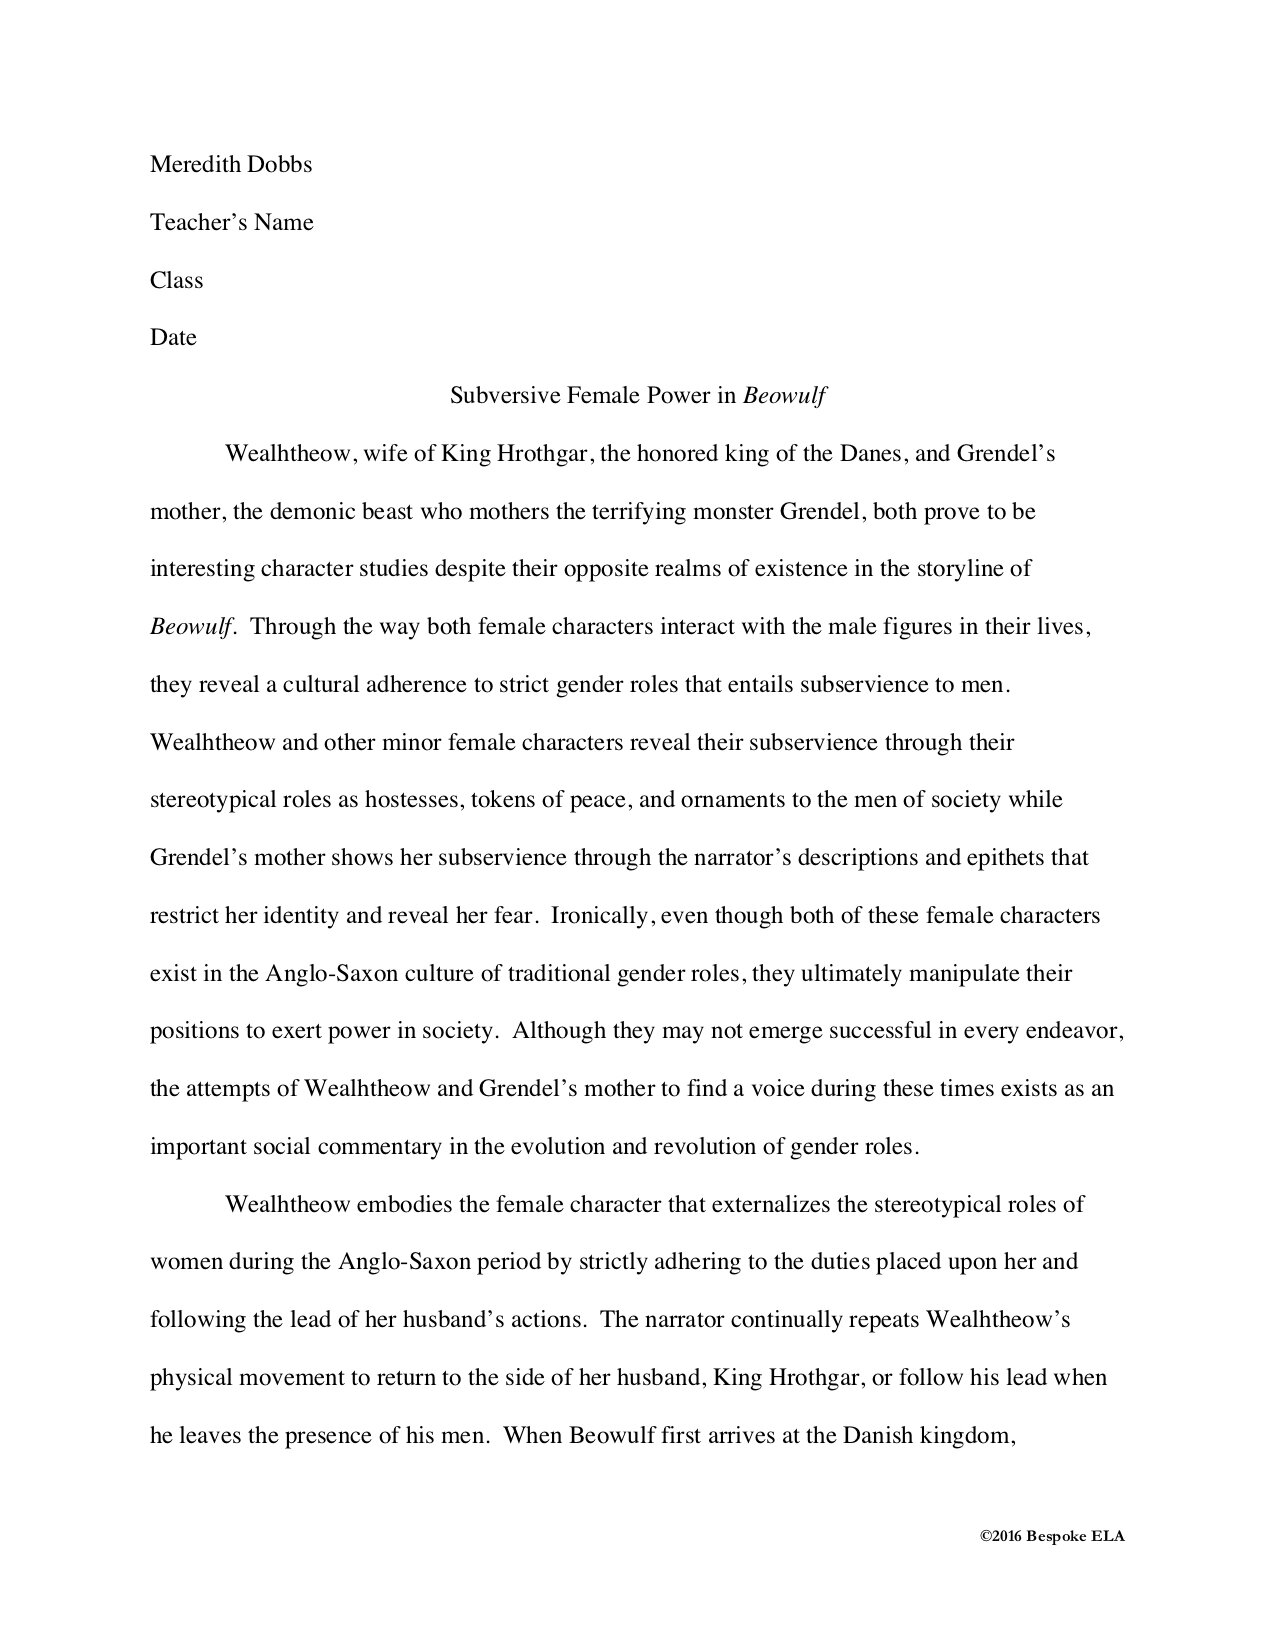 How To Sequence A Literary Analysis Essay Unit Bespoke ELA